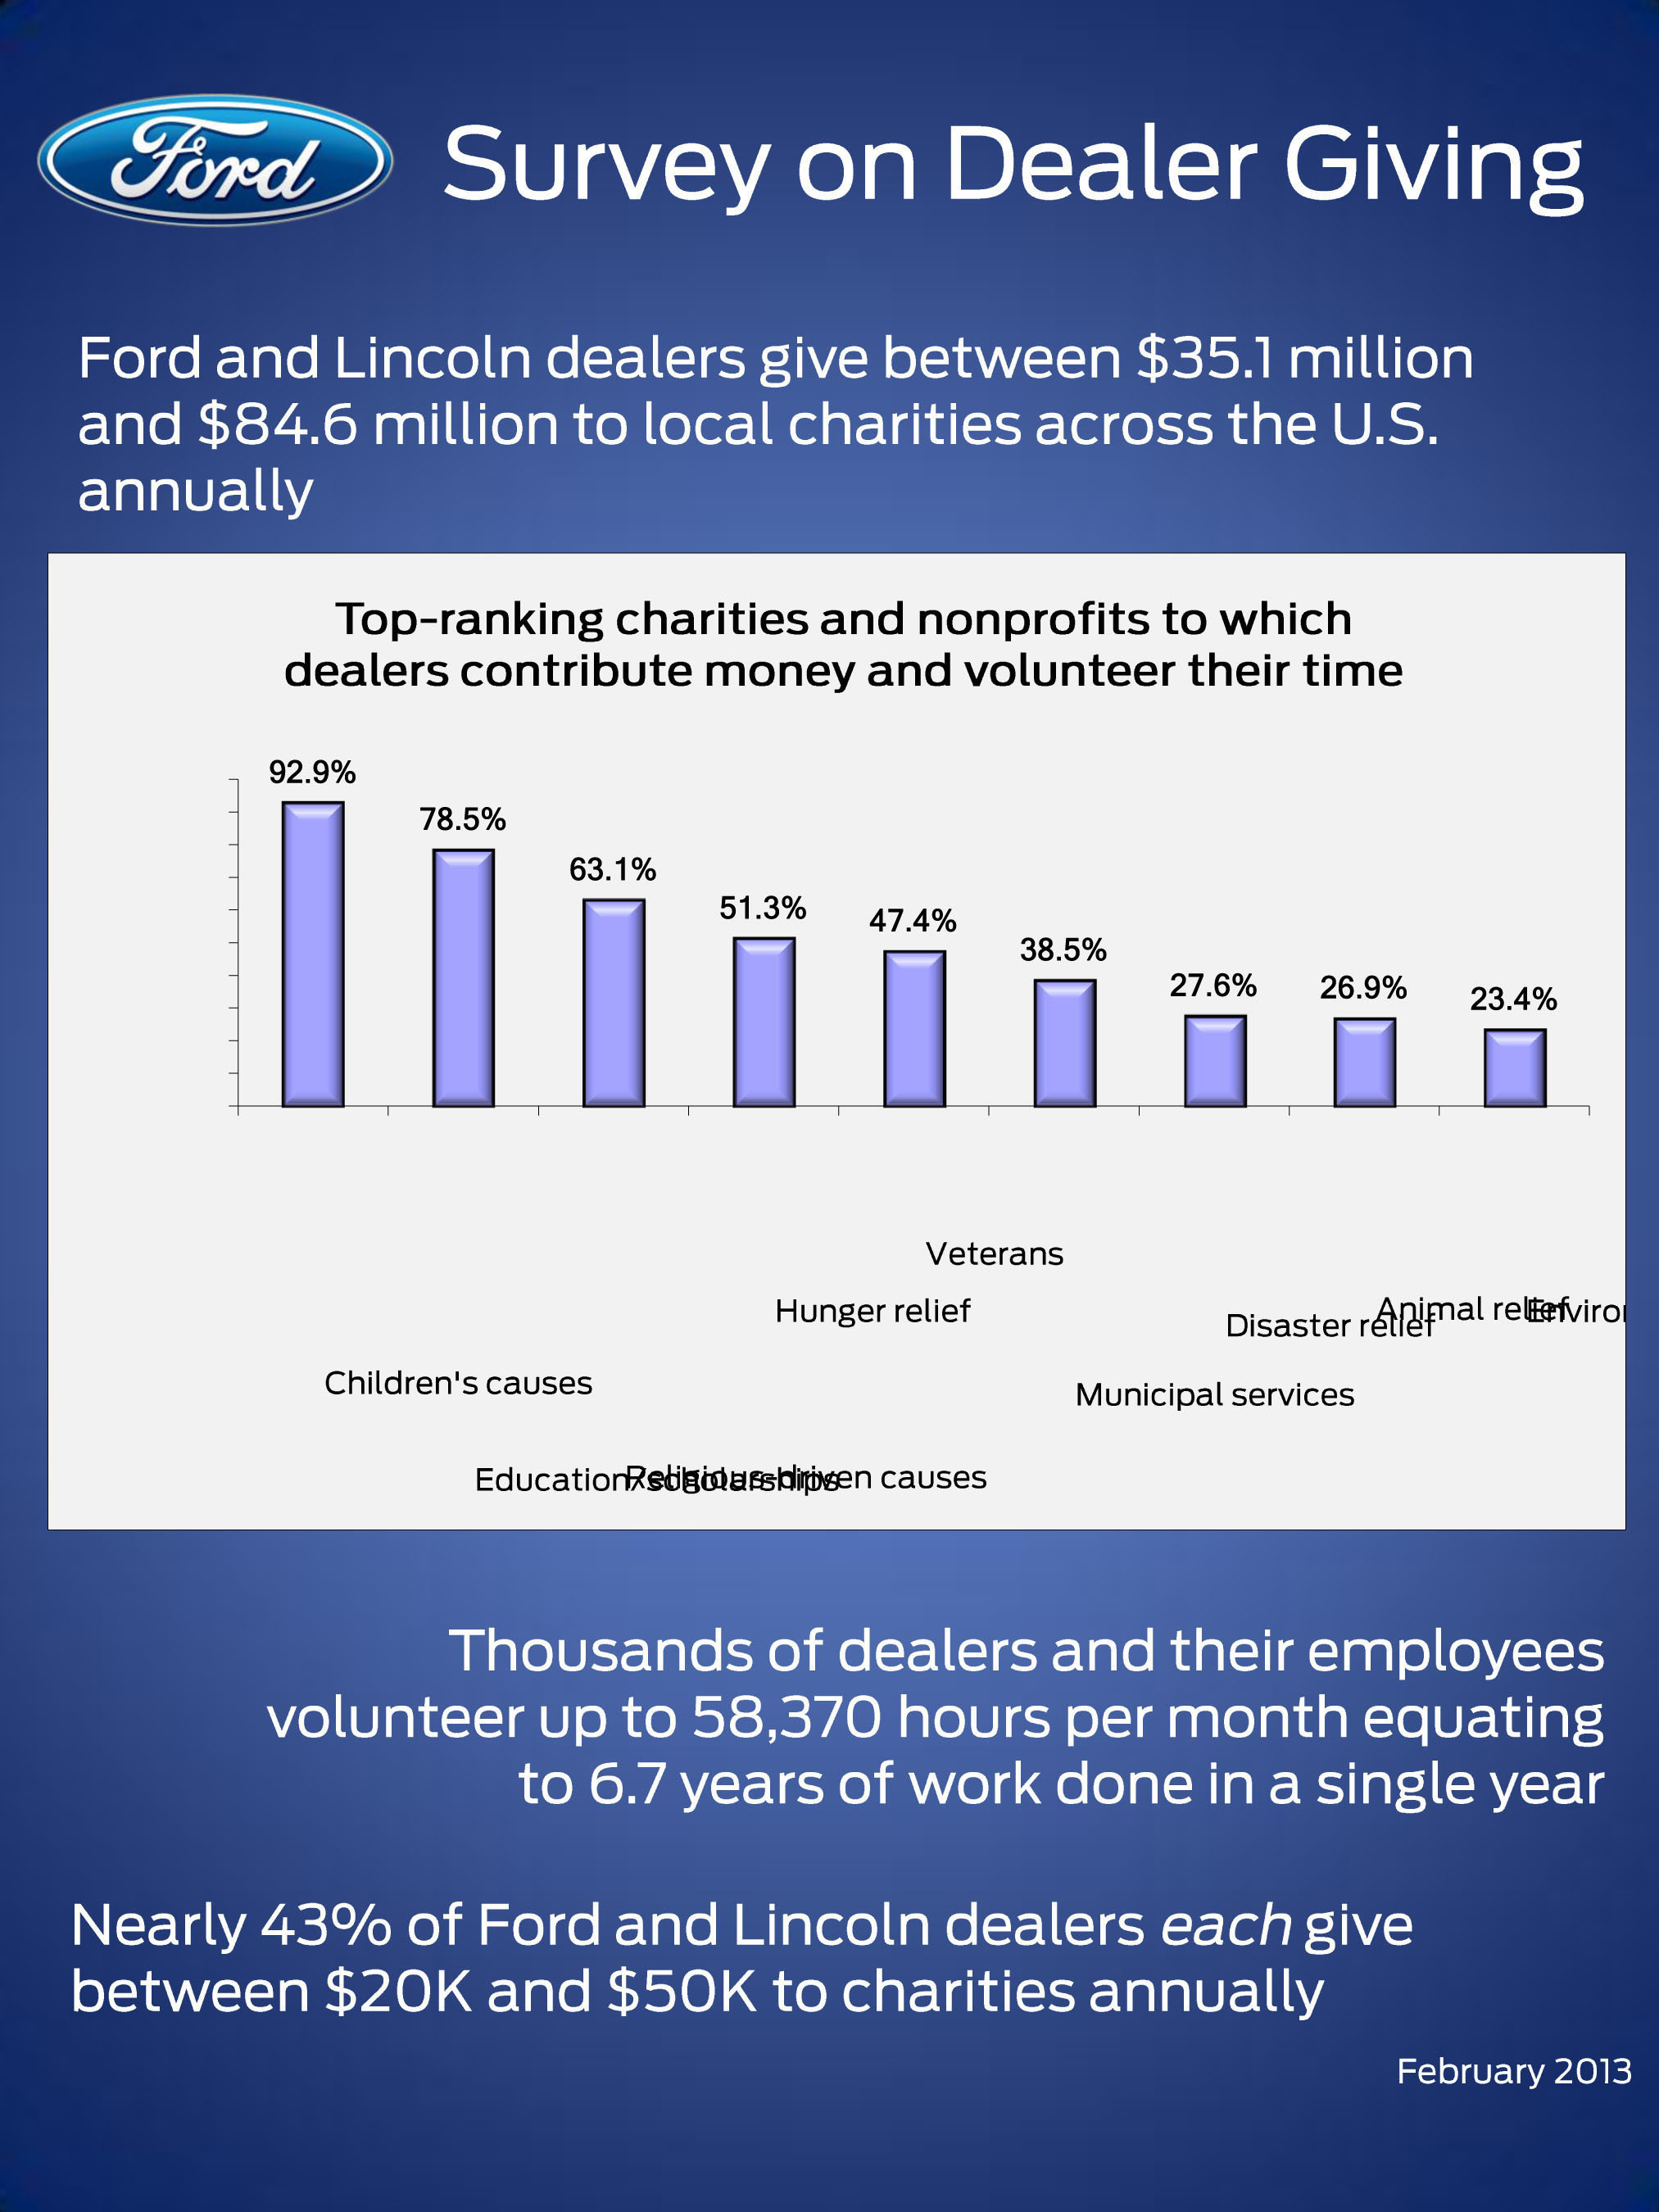 Ford Dealers Give Tens of Millions to U.S. Nonprofits, Provide Thousands of Volunteer Hours